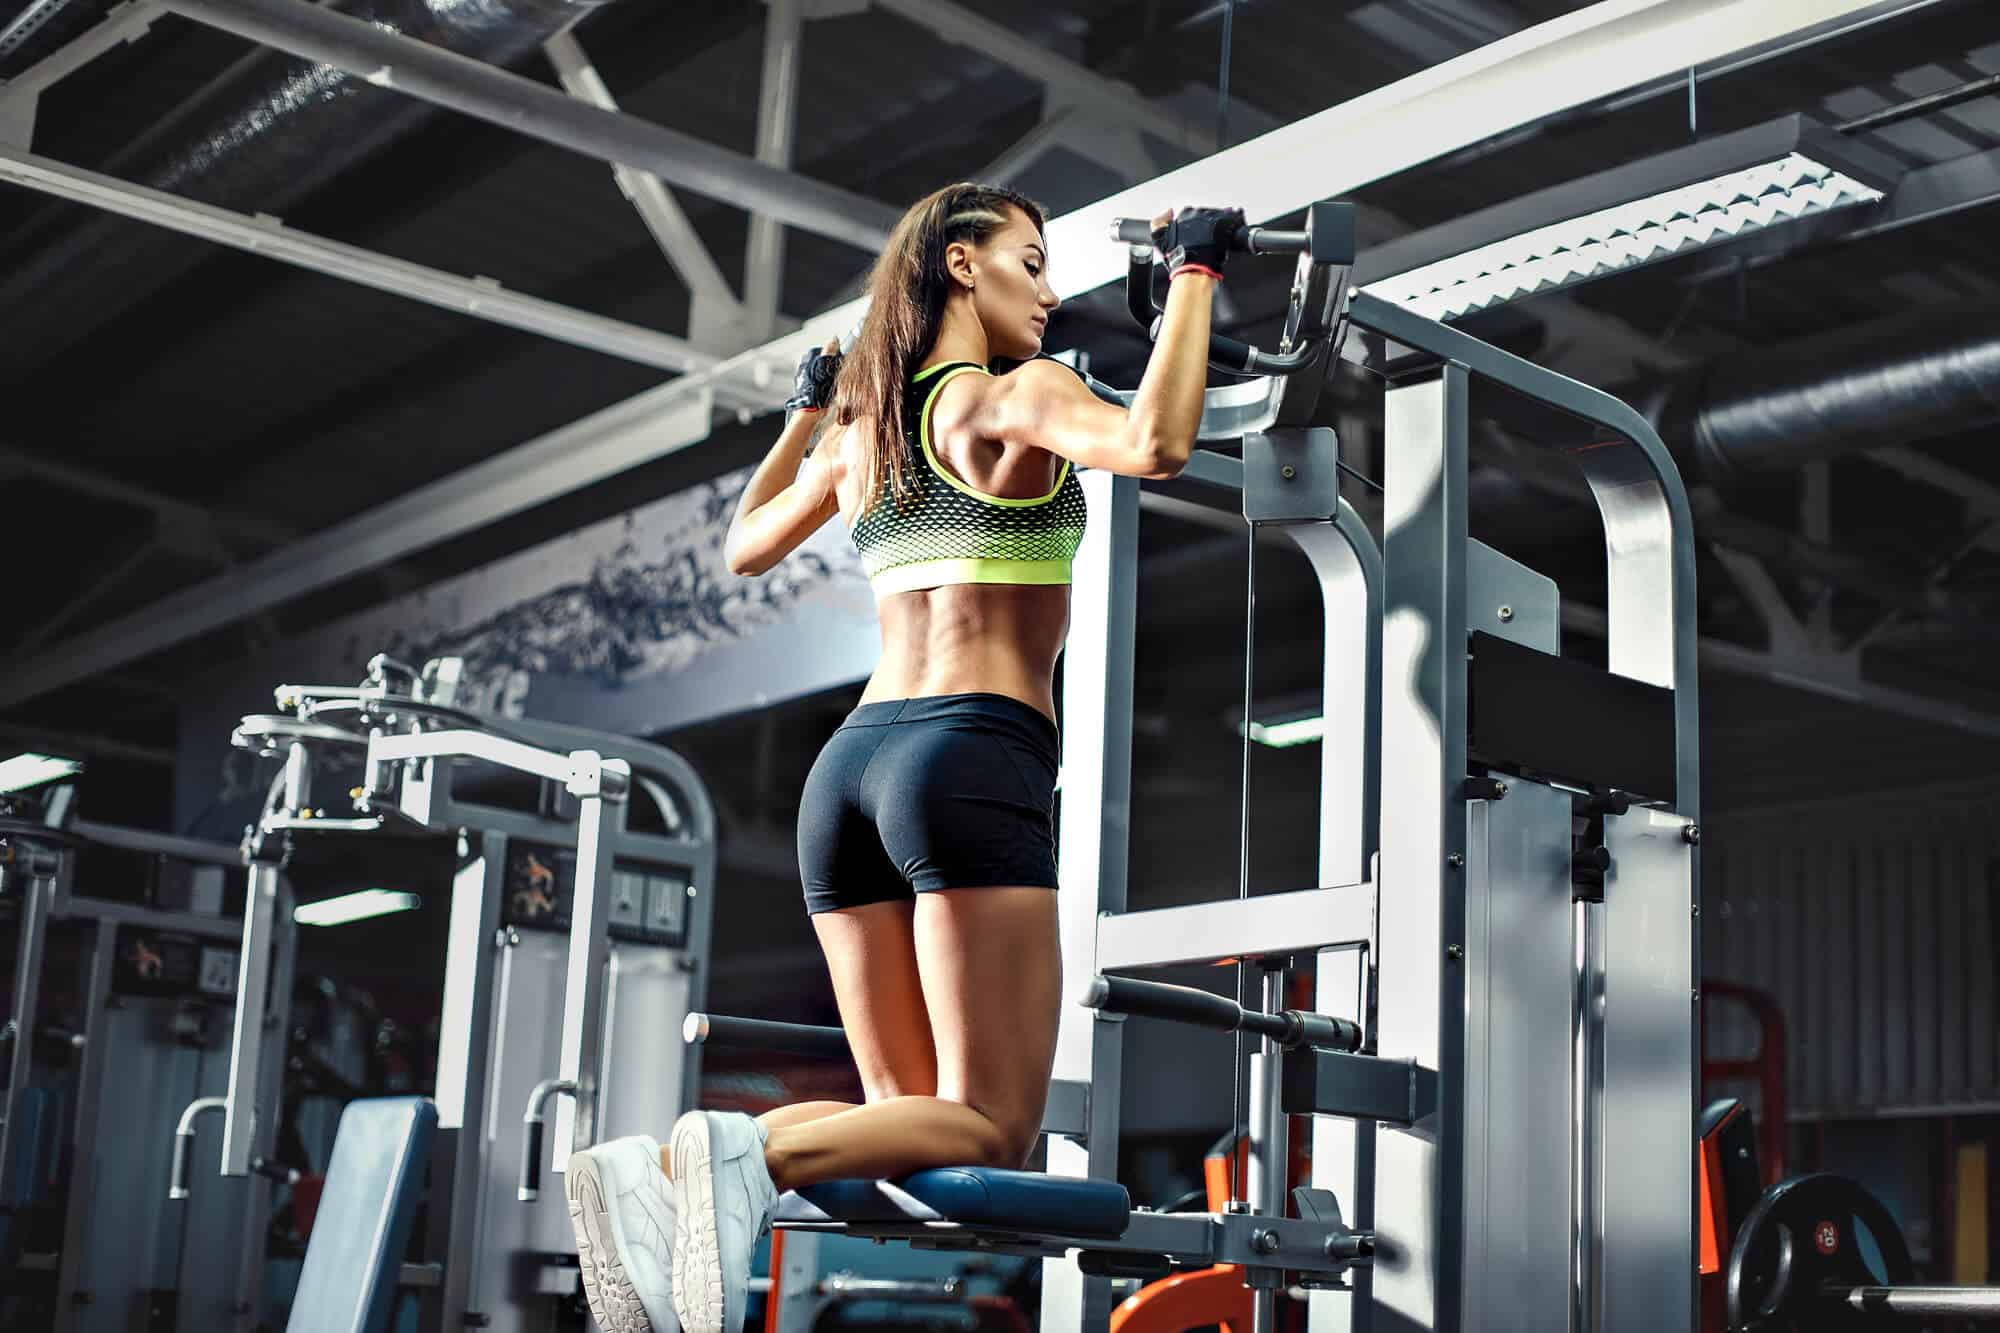 5 Amazing Workout Motivation Tips How To Motivate Yourself To Workout